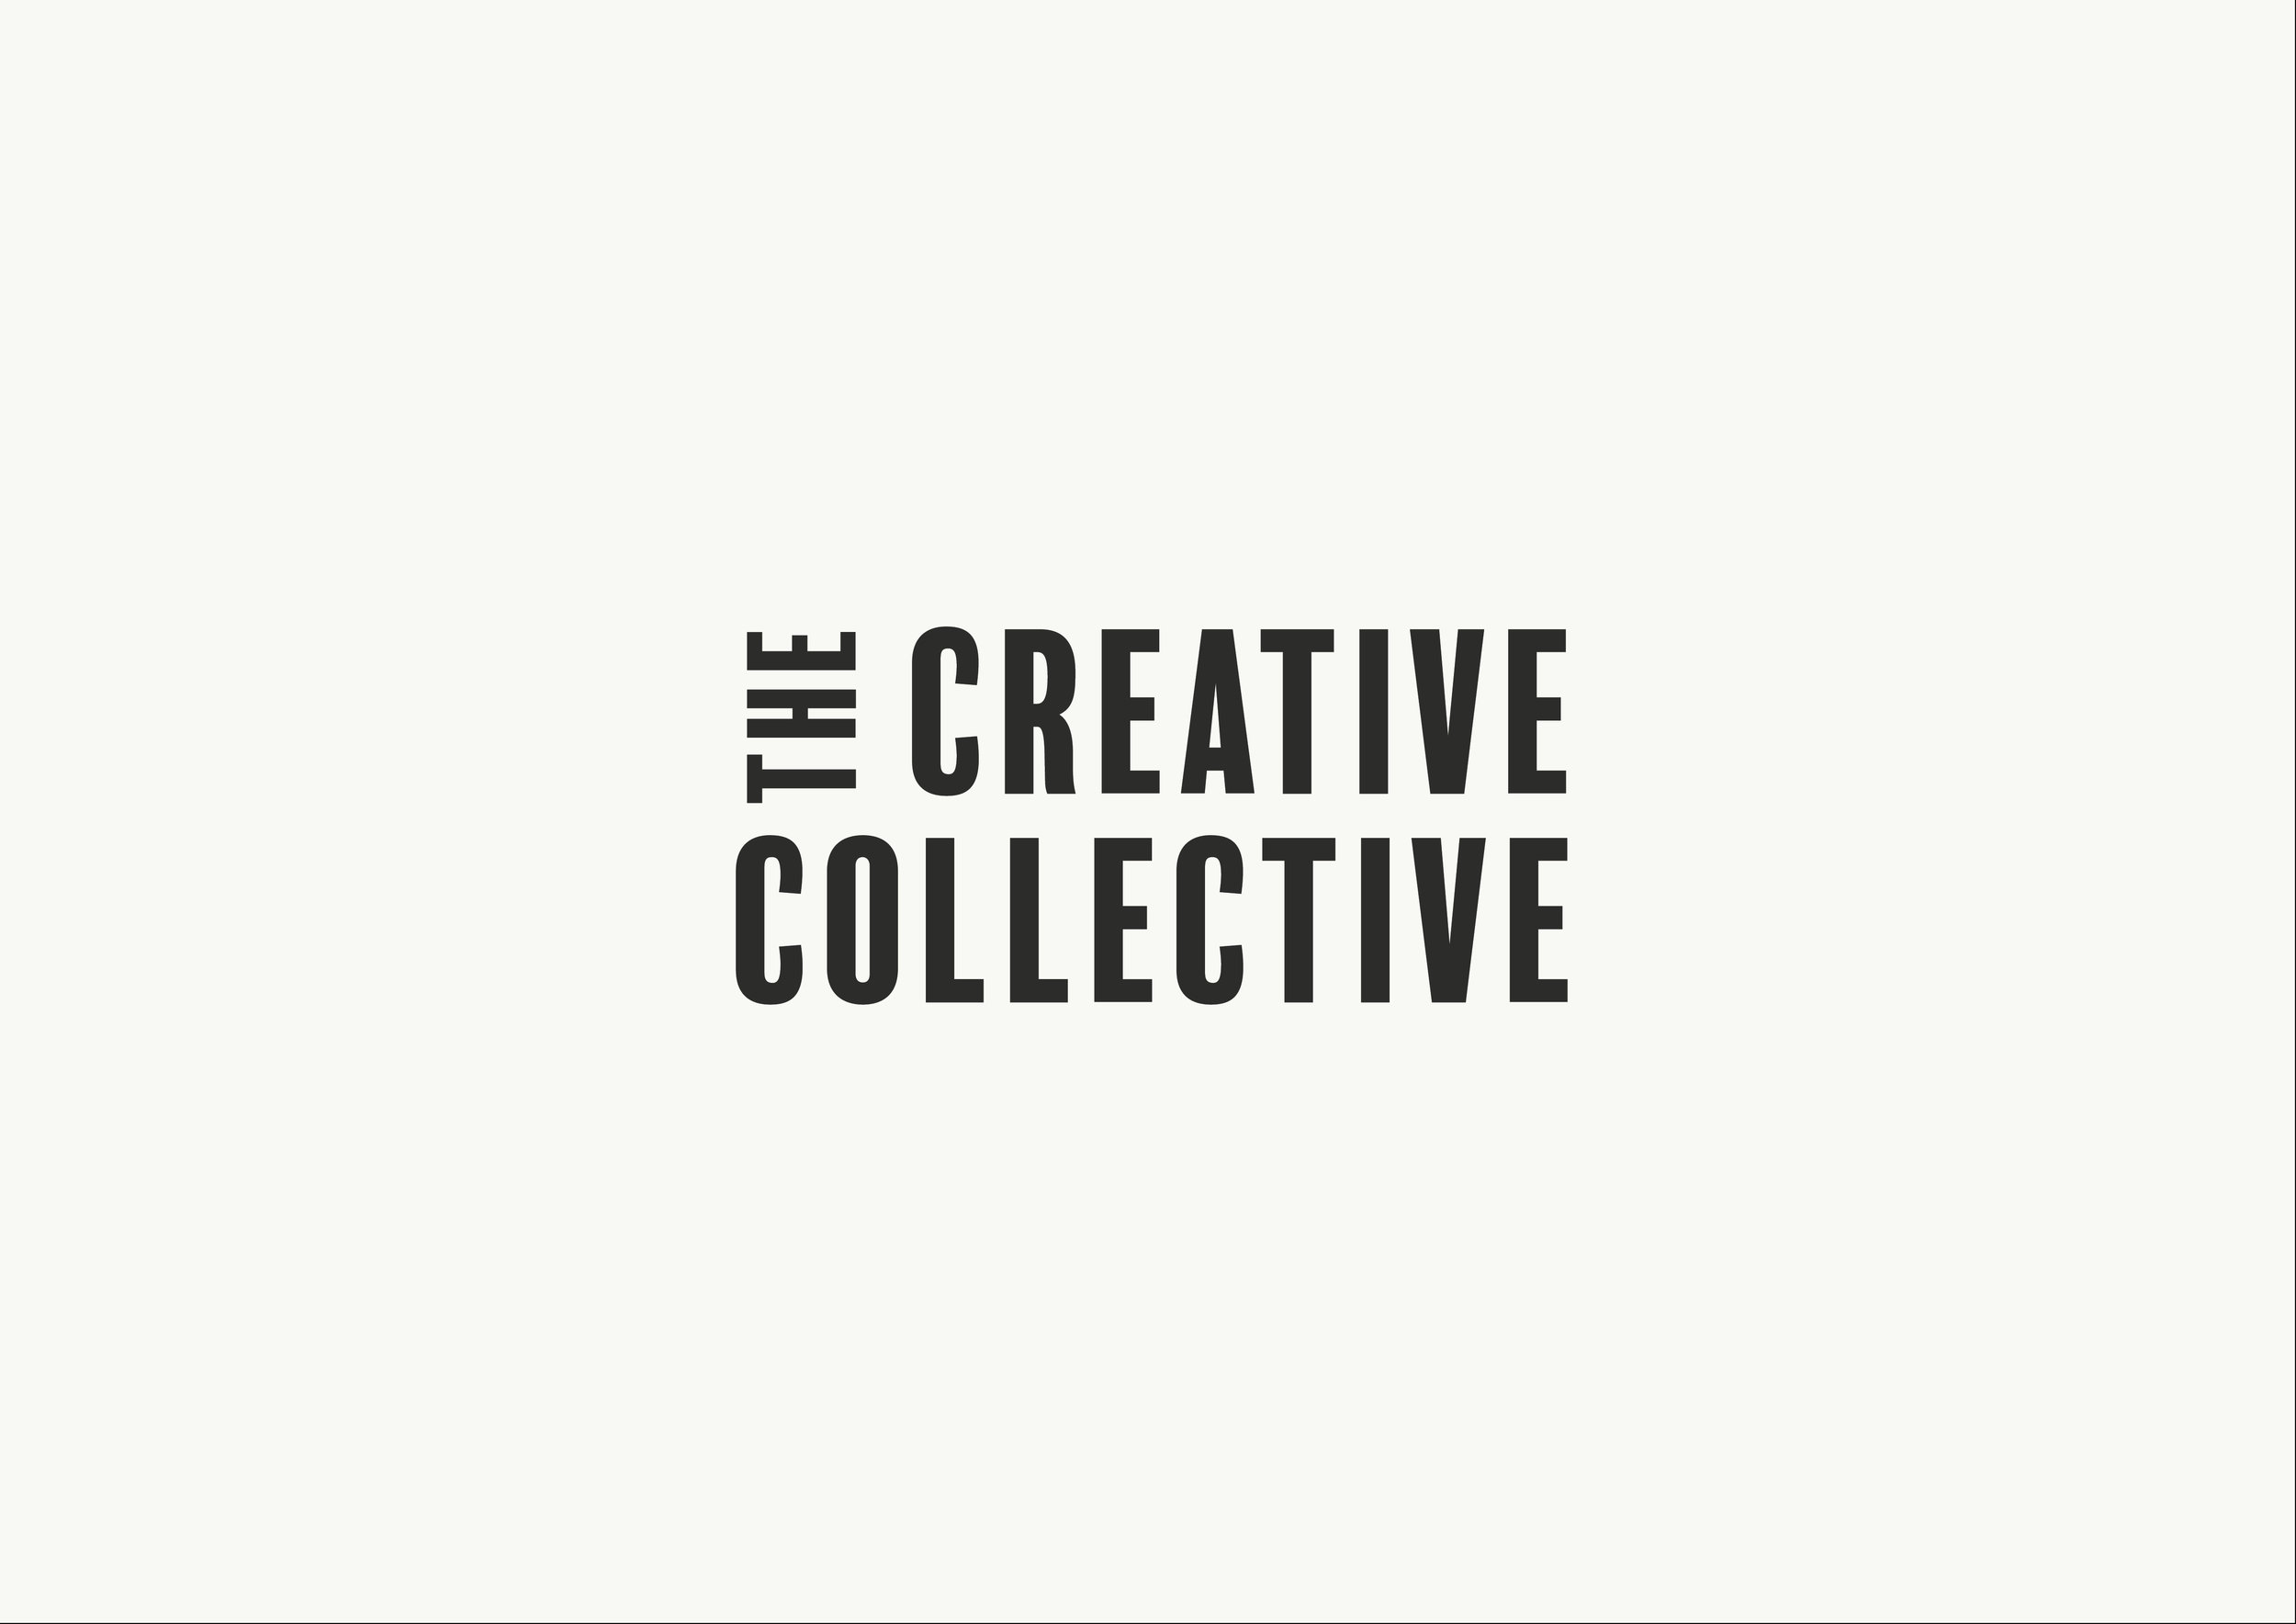 The Creative Collective by RLC